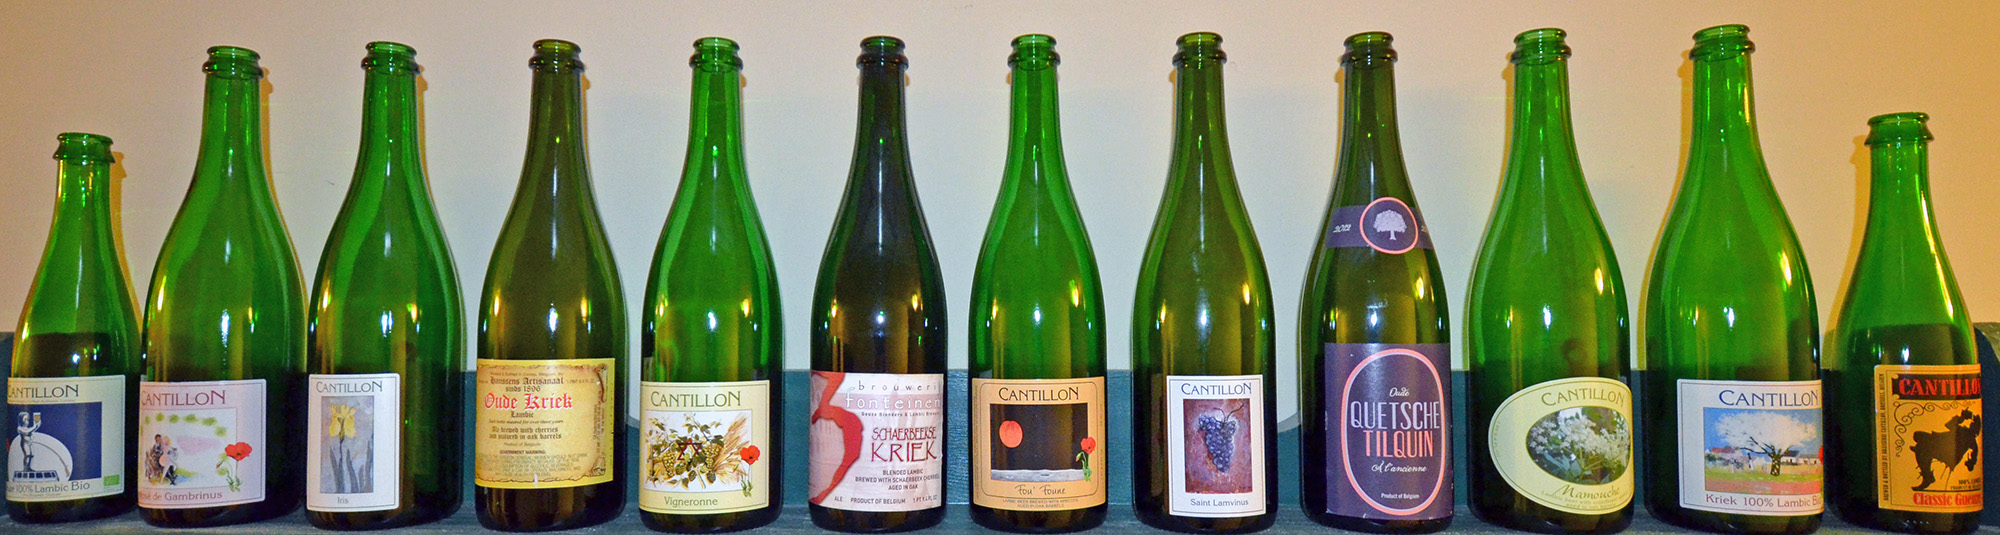 lambic bottles header